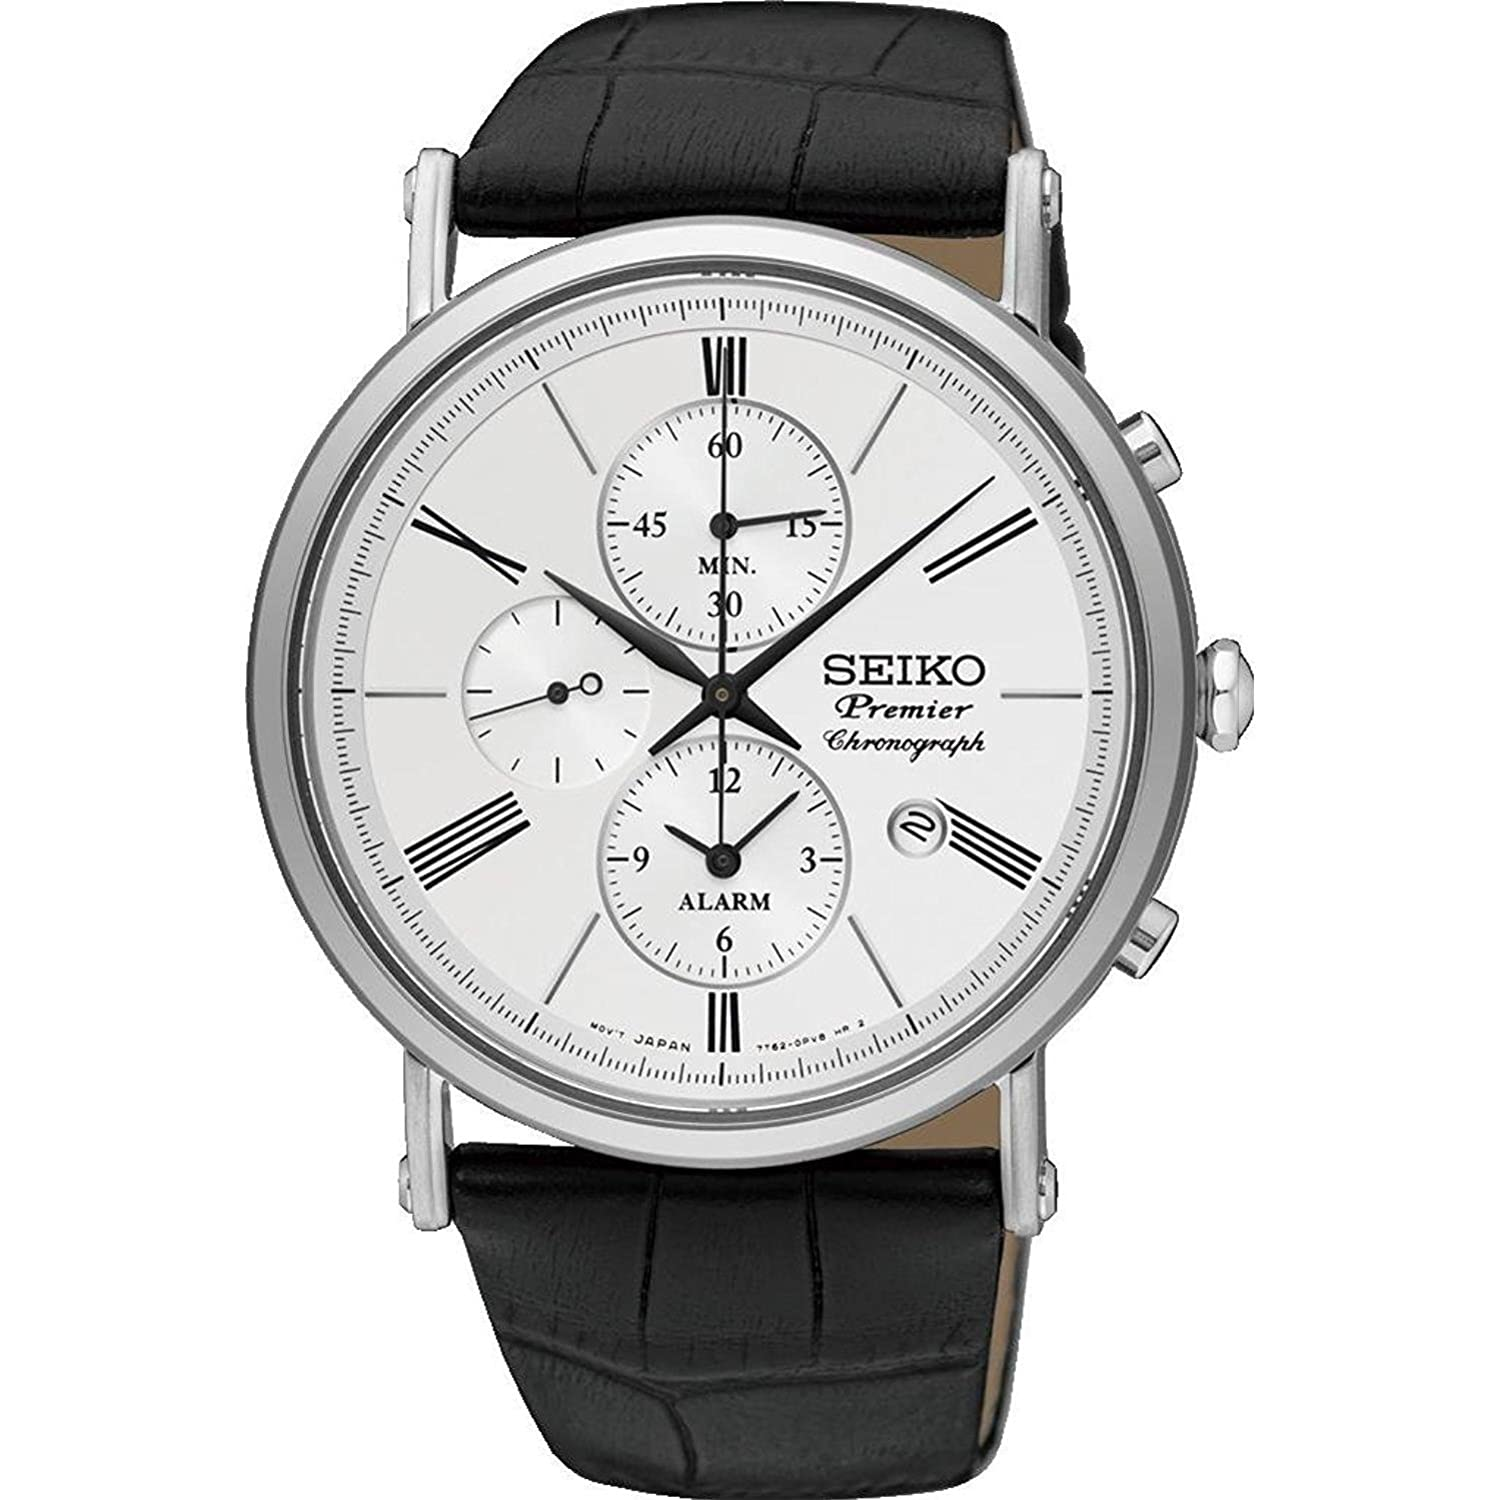 handsome chronograph seiko is mediums retains cal a military simplicity use watch watches its which this